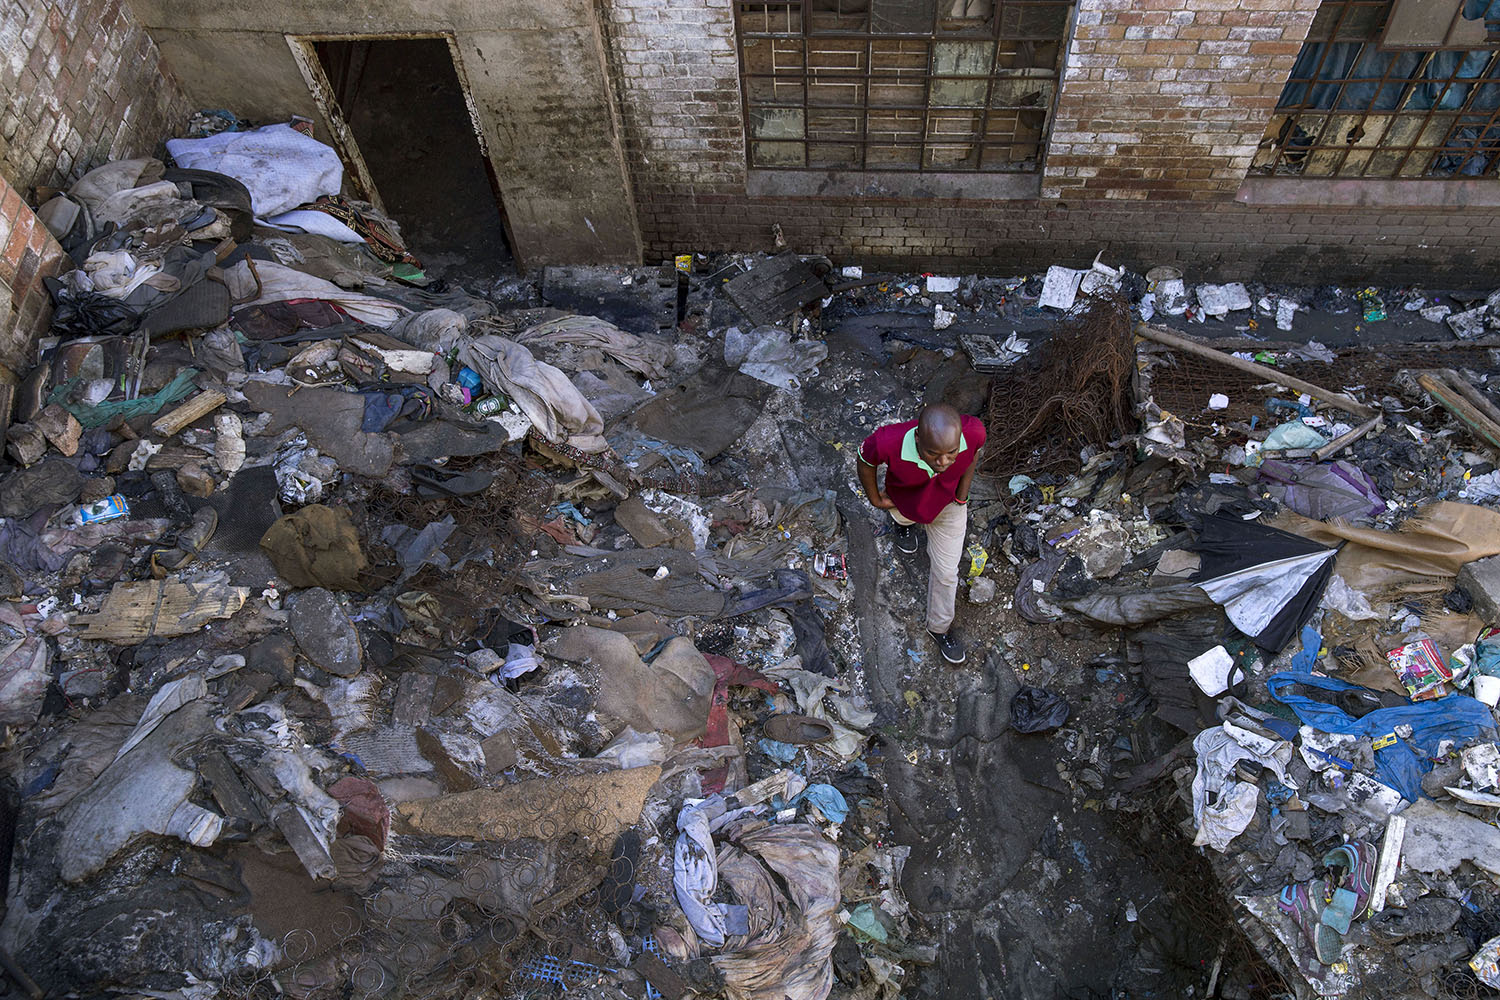 An African migrant resident walking in the rubbish-filled courtyard between two derelict buildings,  July 19, 2015.